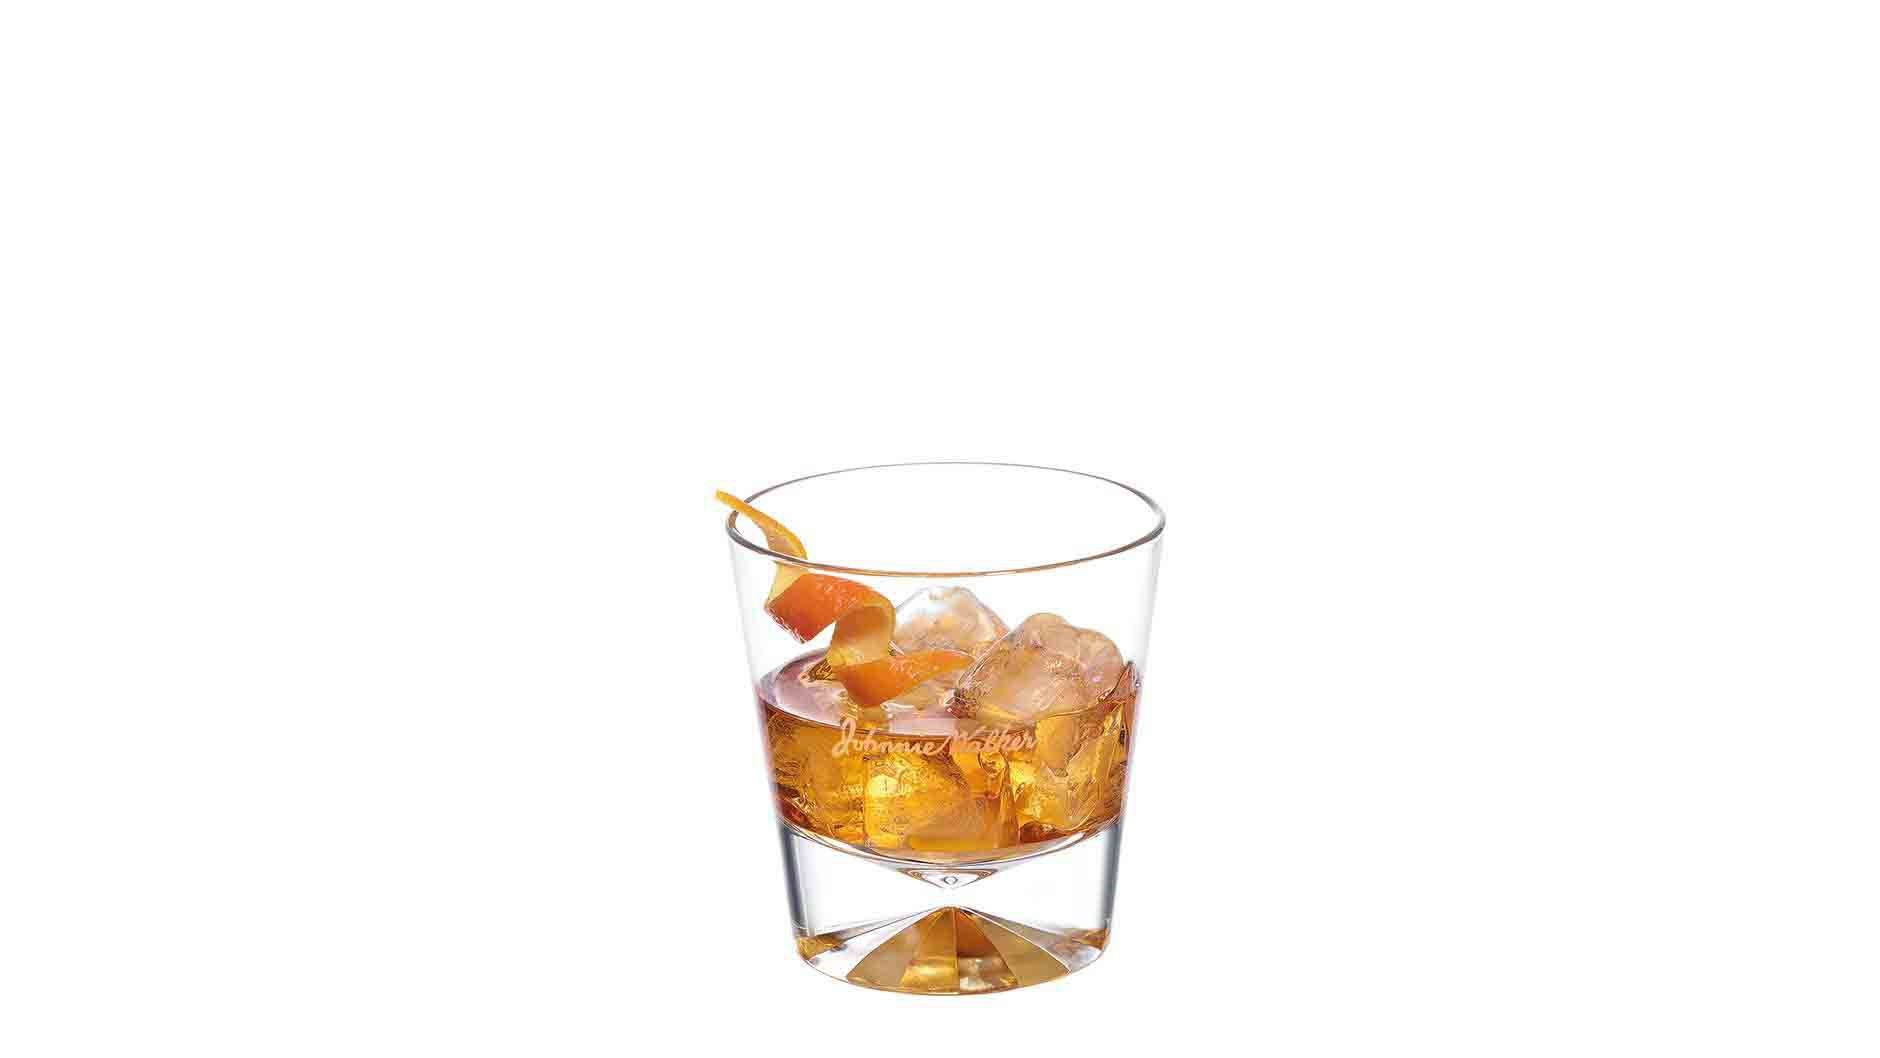 Cóctel Johnnie Walker Black Old Fashioned en un vaso de whisky